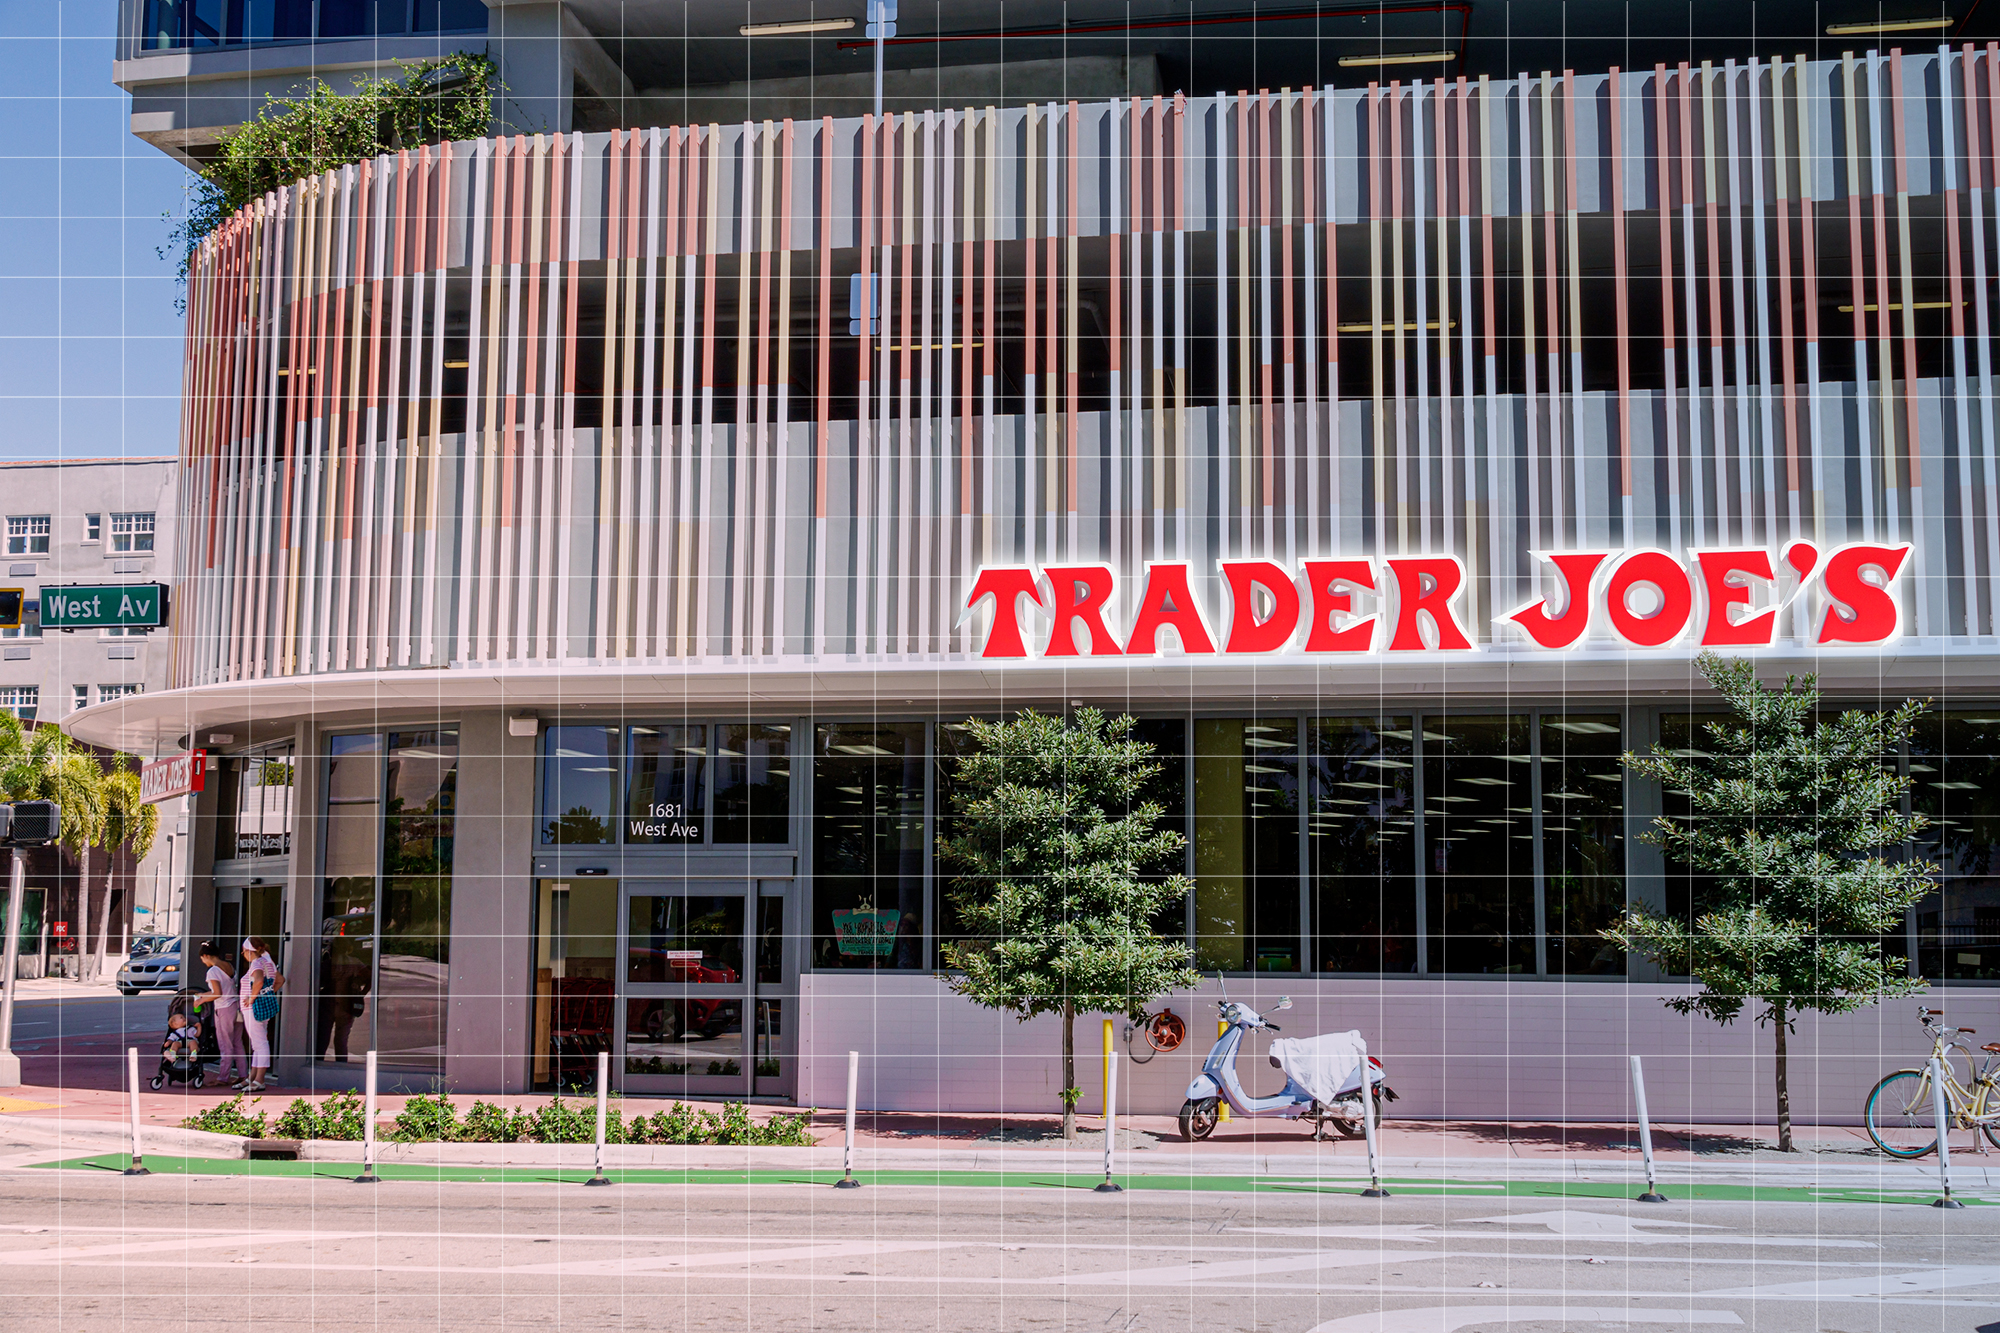 Florida, Miami Beach, Trader Joe's, grocery store exterior and entrance